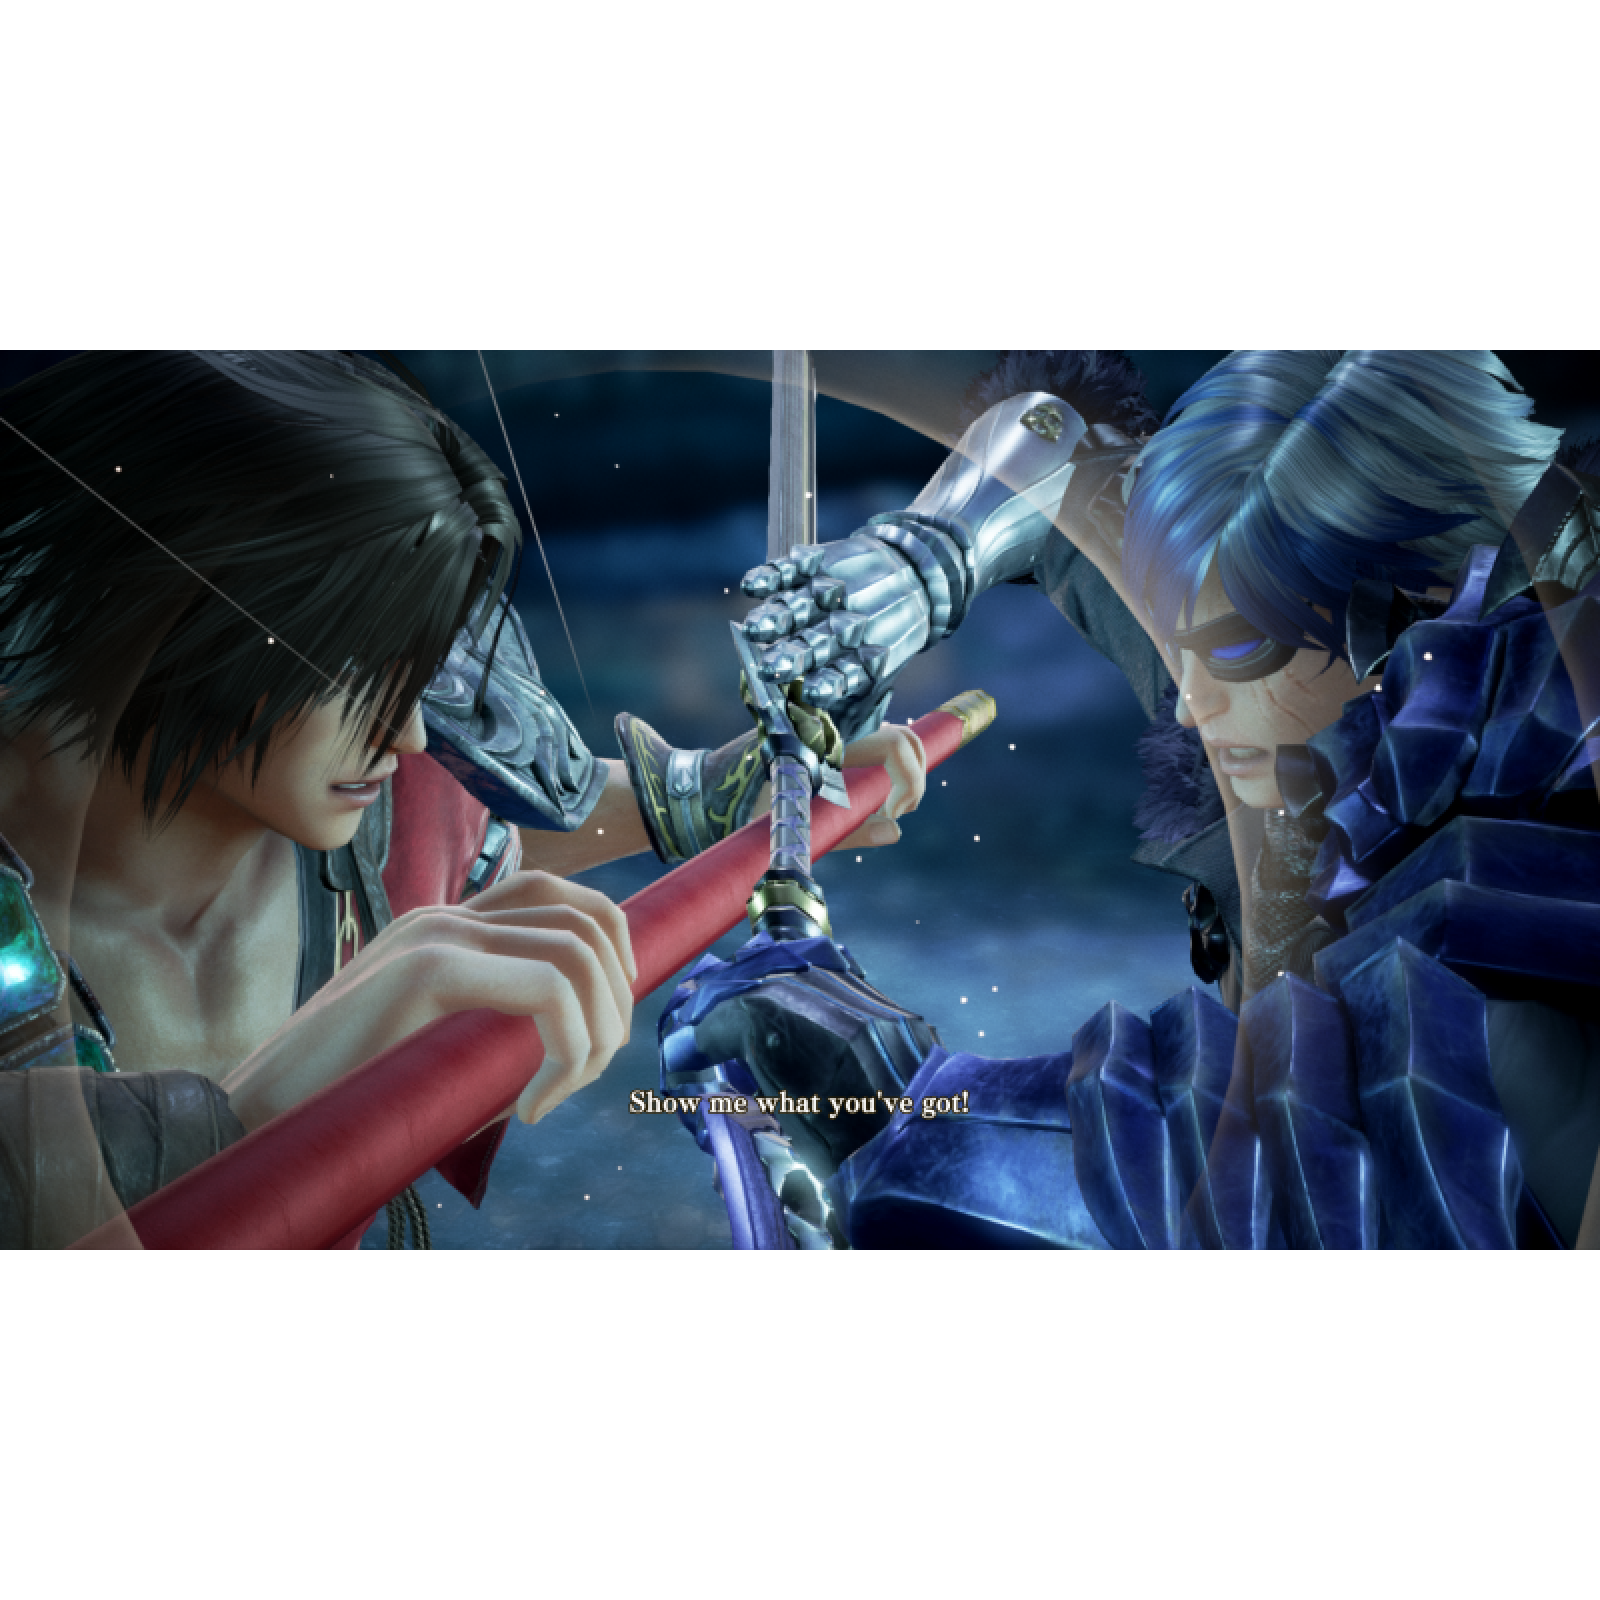 SoulCalibur VI' Review: Loads of Content and Critical